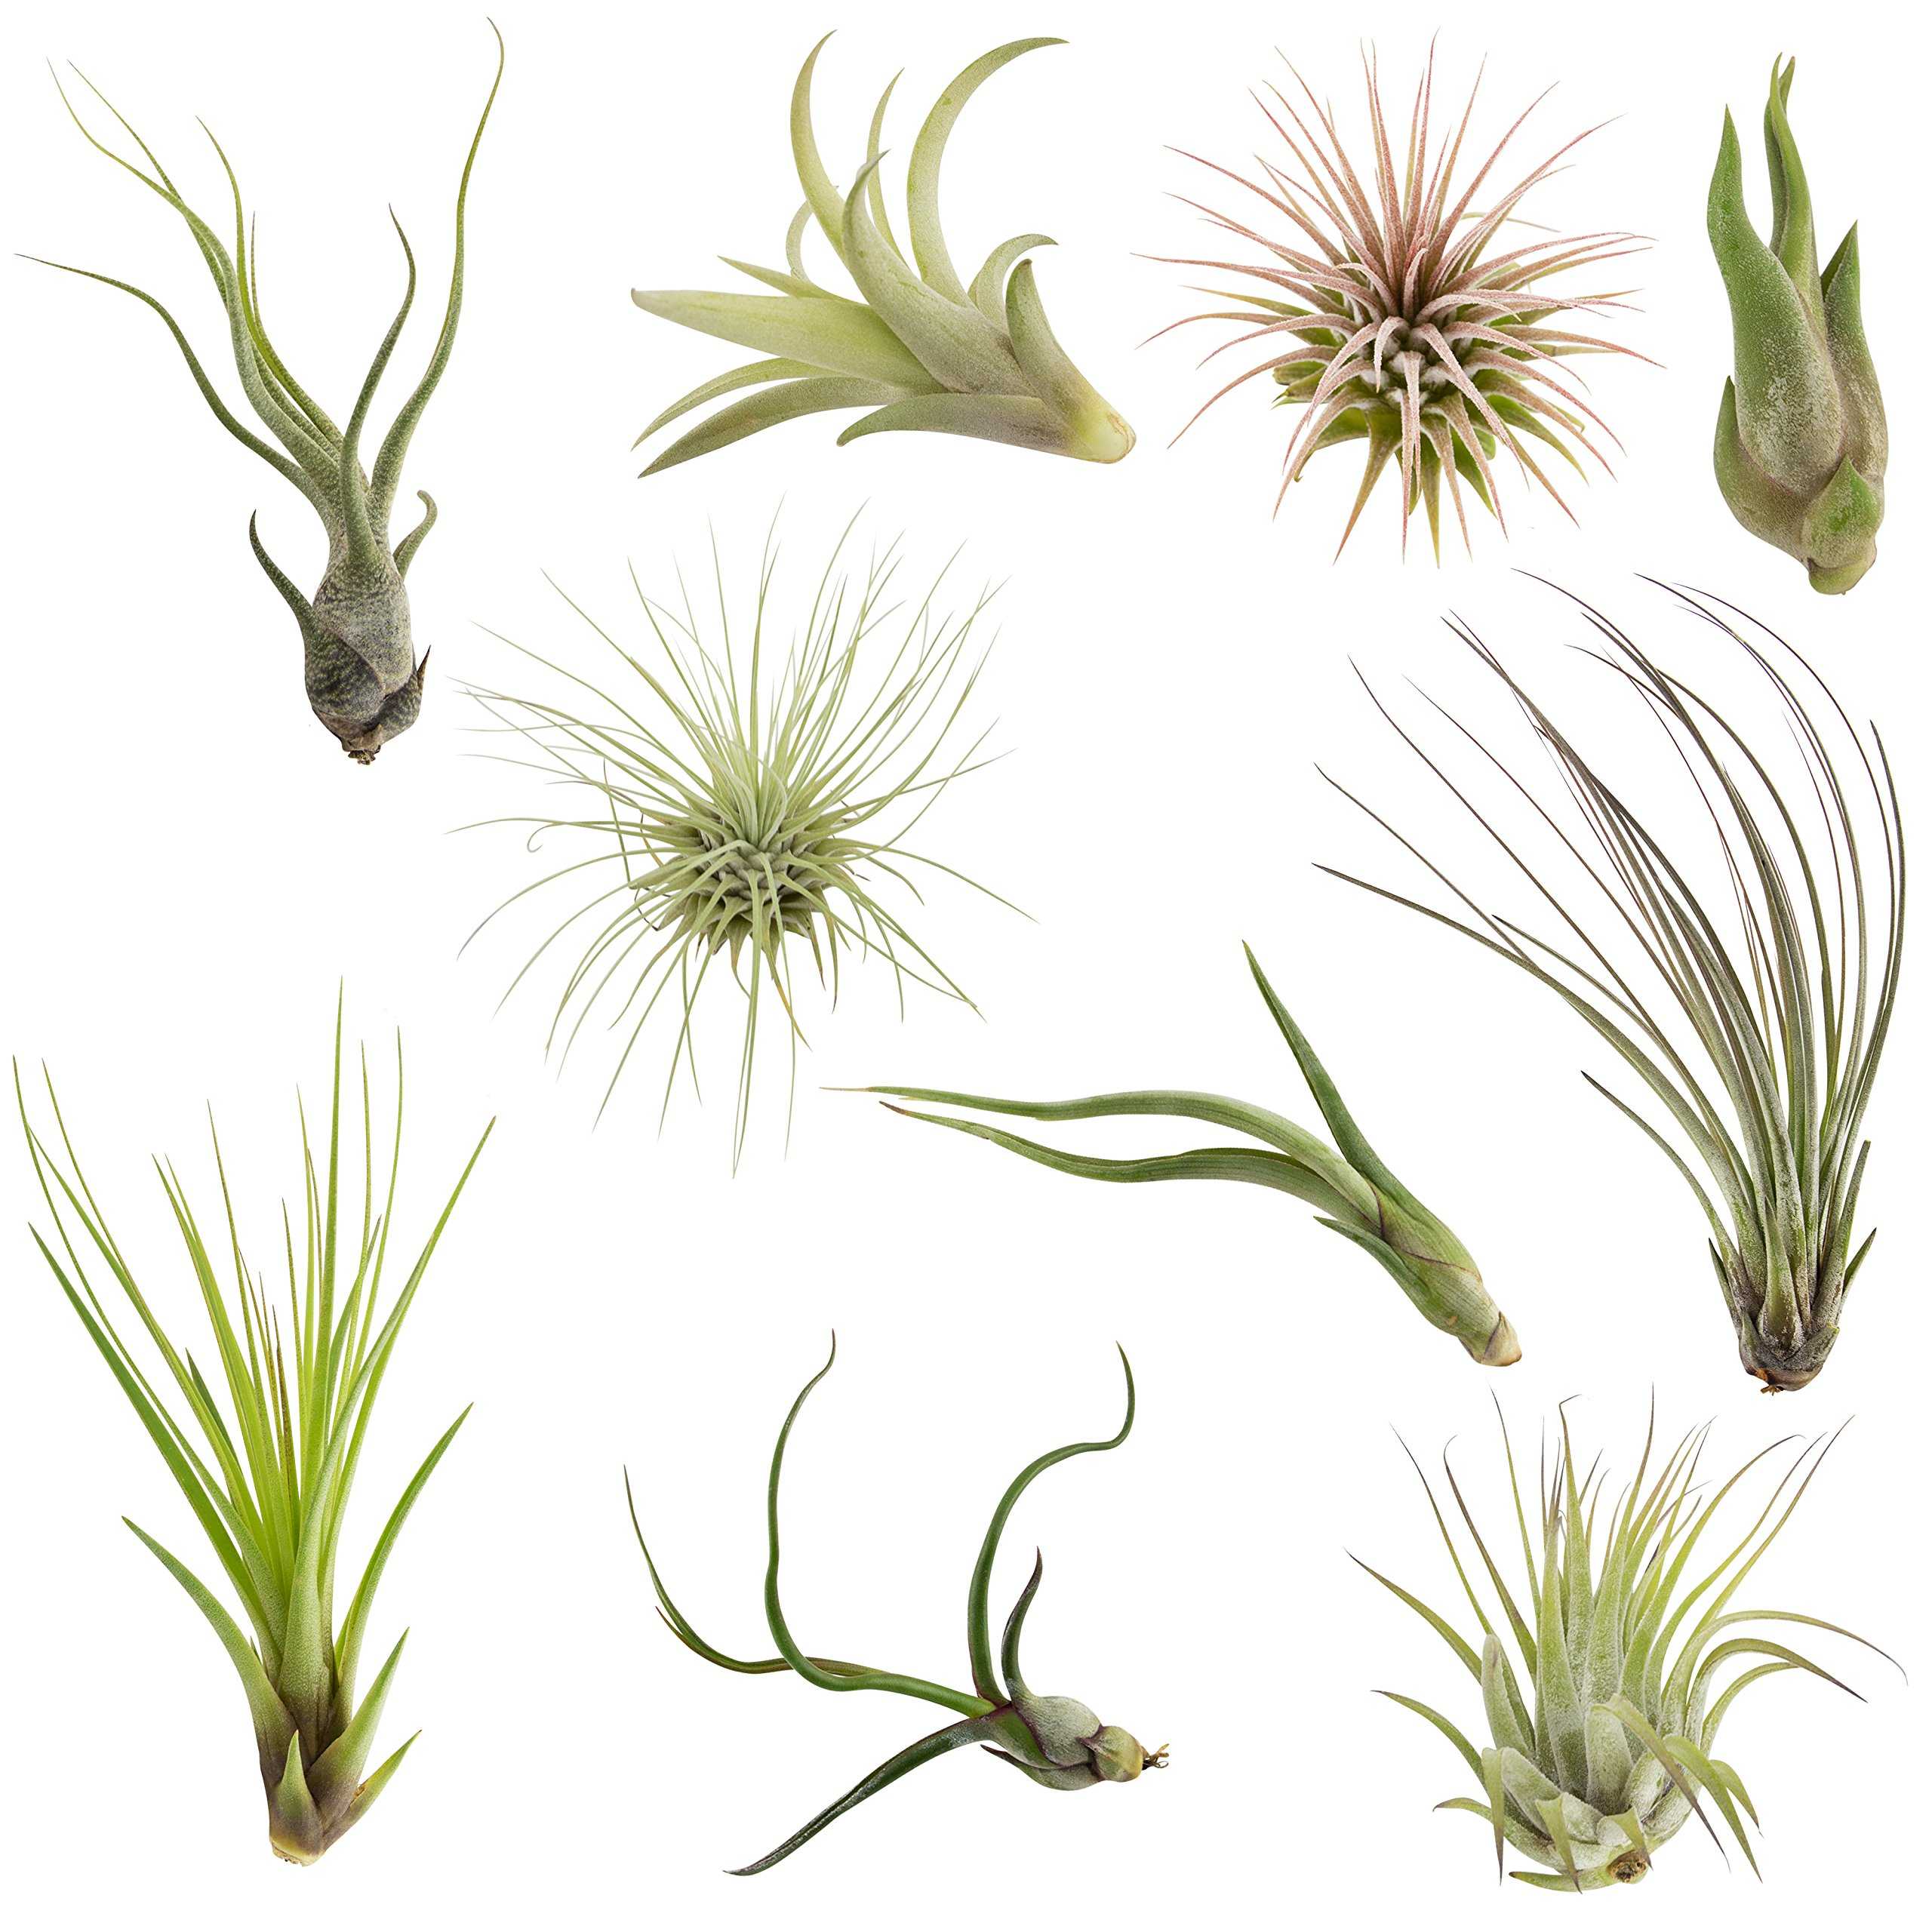 CTS Air Plants Assorted Tillandsia Easy Care Collection(10 pack)-Low-Maintenance Air Plants by CTS Air Plants